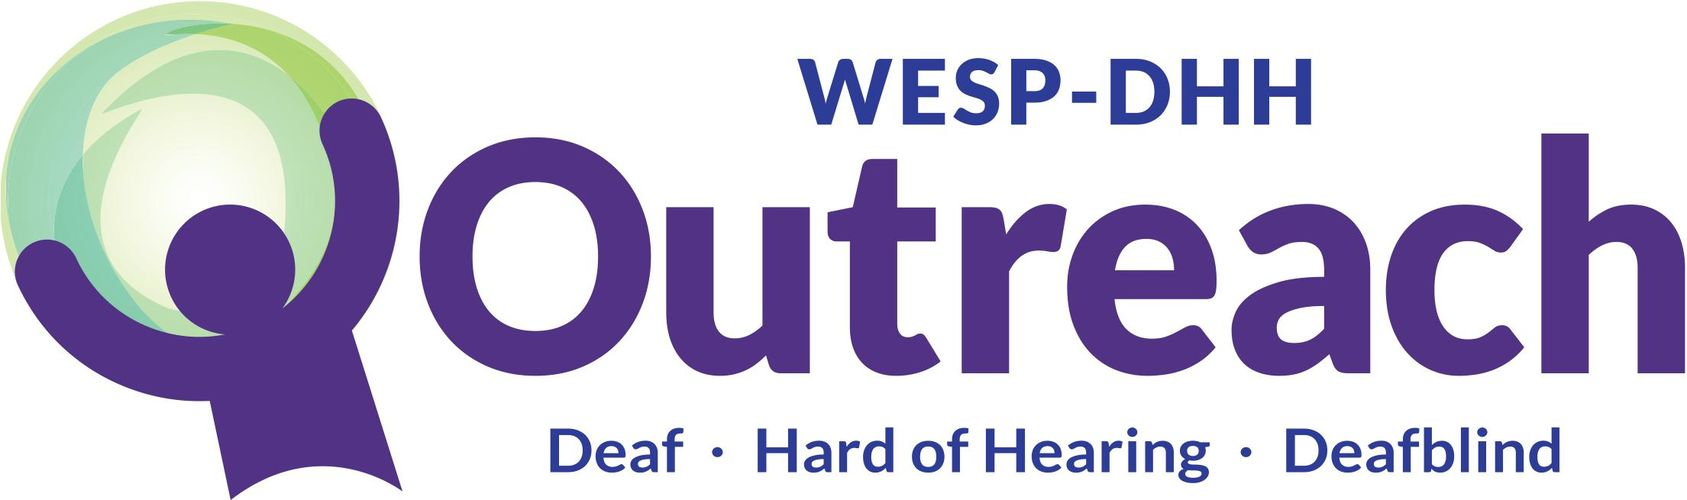 WESP-DHH Outreach